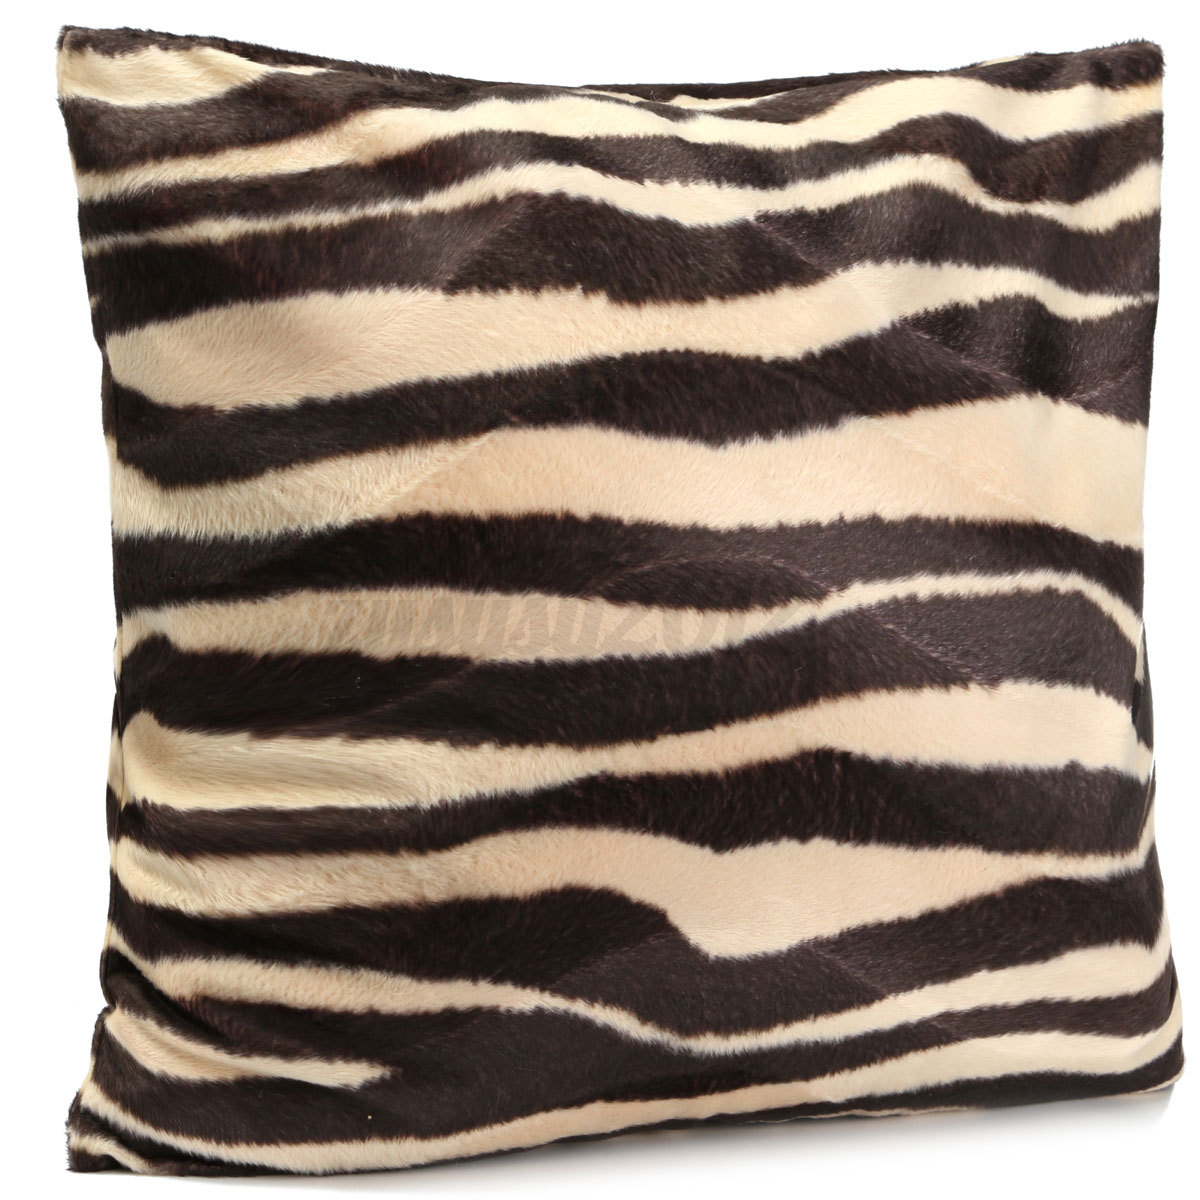 Animal Zebra Leopard Print Pillow Case Sofa Waist Throw Cushion Cover Home Decor eBay